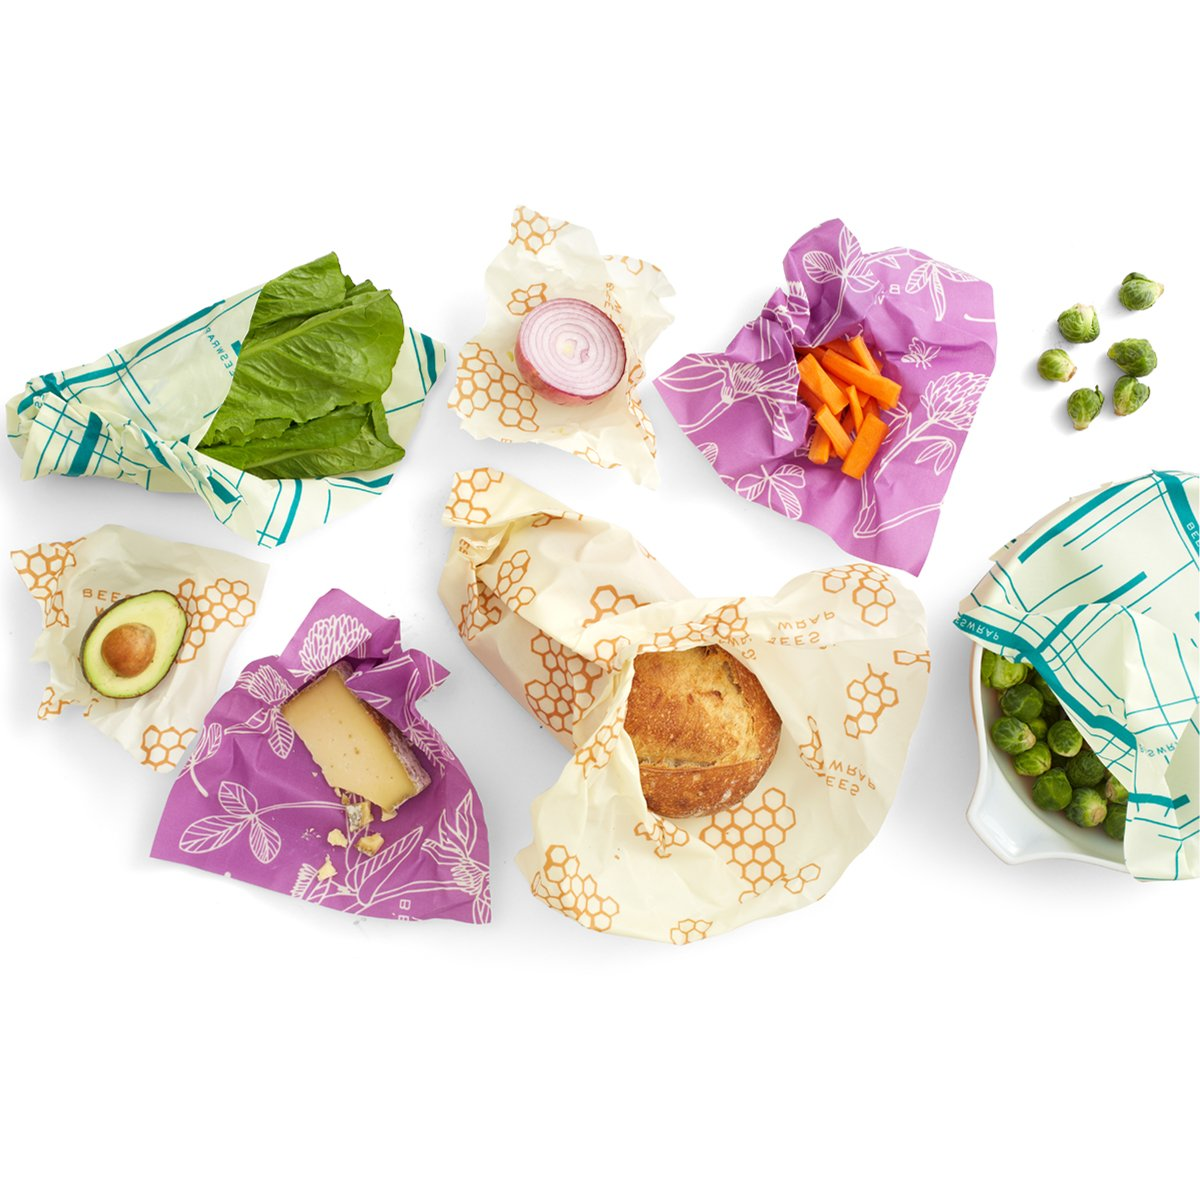 Bee's Wrap reusable food wraps are handmade in Vermont of cotton with beeswax, jojoba oil and tree resin. $18-$21.   beeswrap.com  .